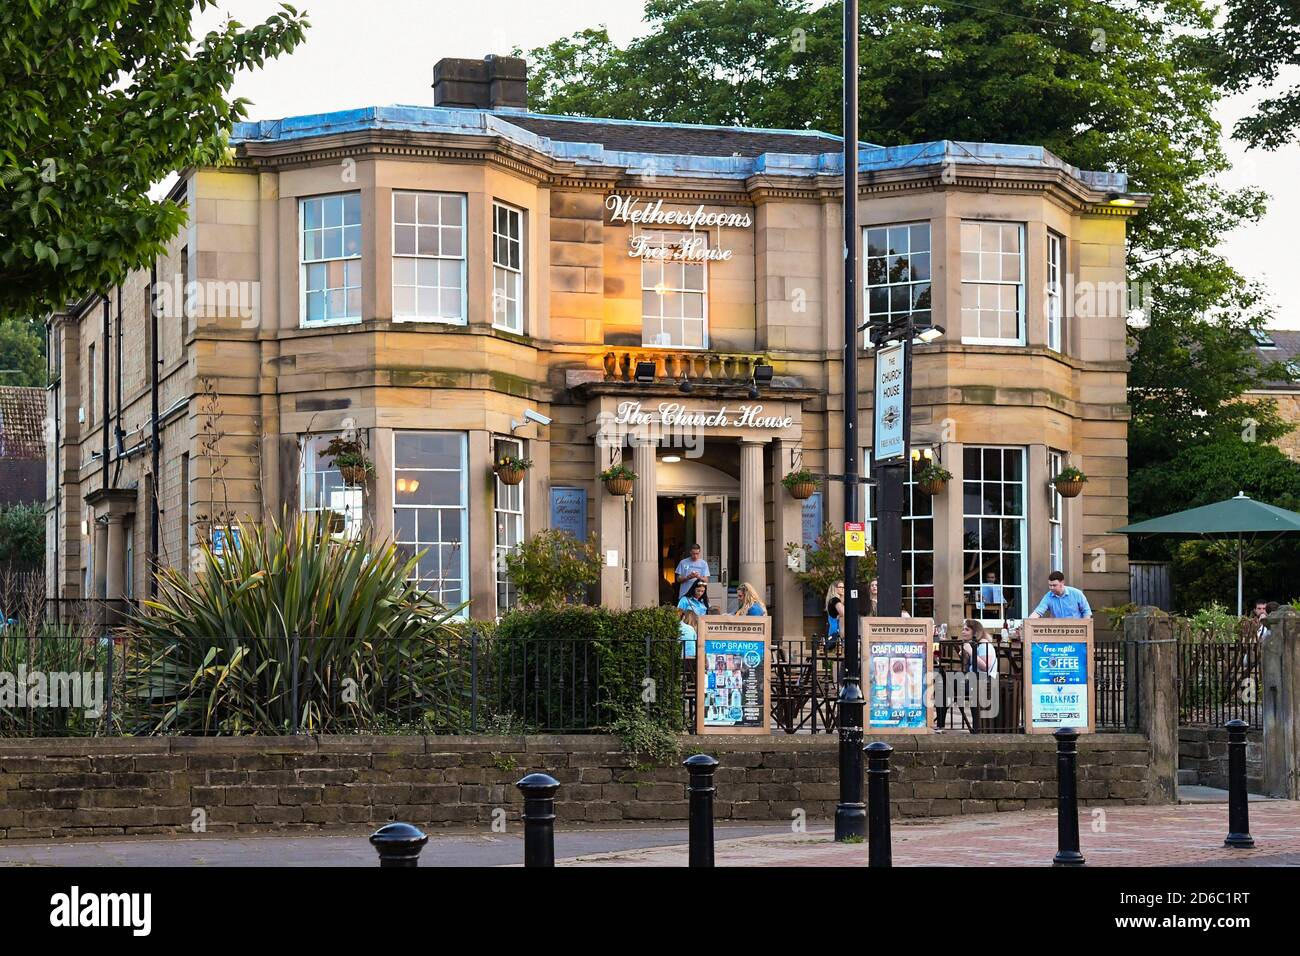 Wetherspoons pub The Church House, Wath Upon Dearne, Rotherham, South Yorkshire, Inghilterra, Regno Unito Foto Stock